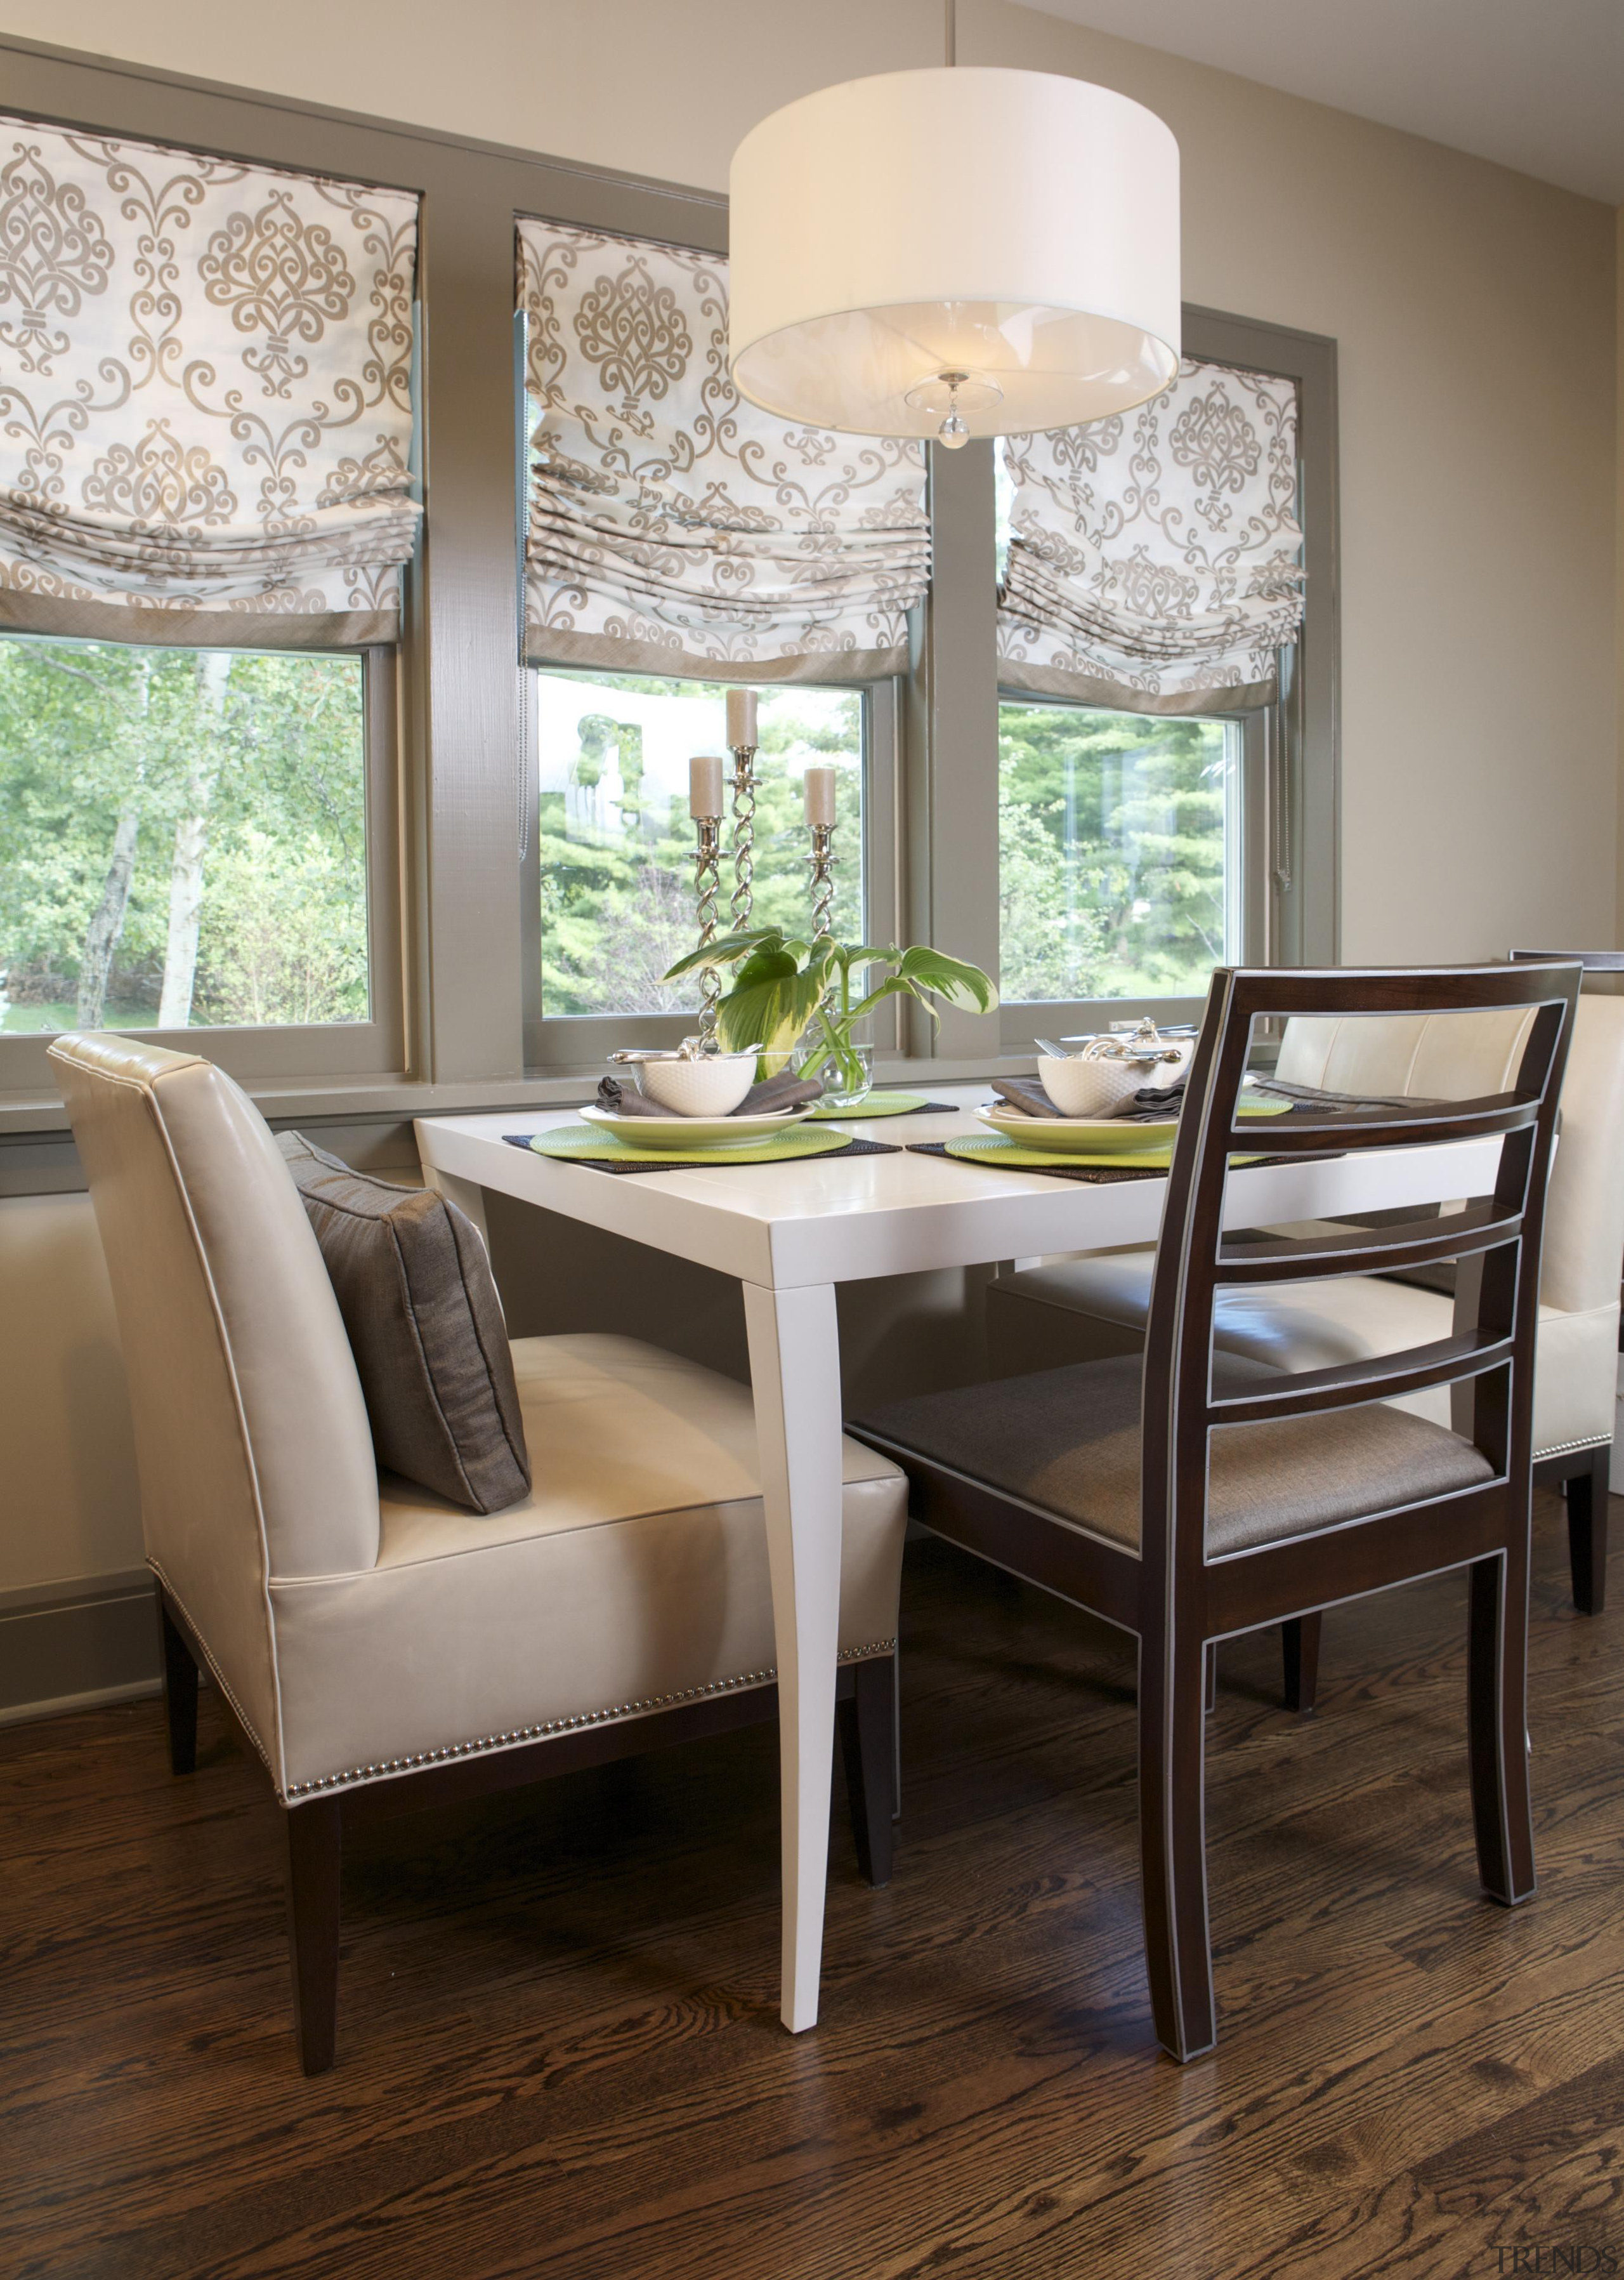 Historic Bungalow Renovation - Breakfast Area - chair chair, dining room, floor, furniture, home, interior design, living room, room, table, window, gray, brown